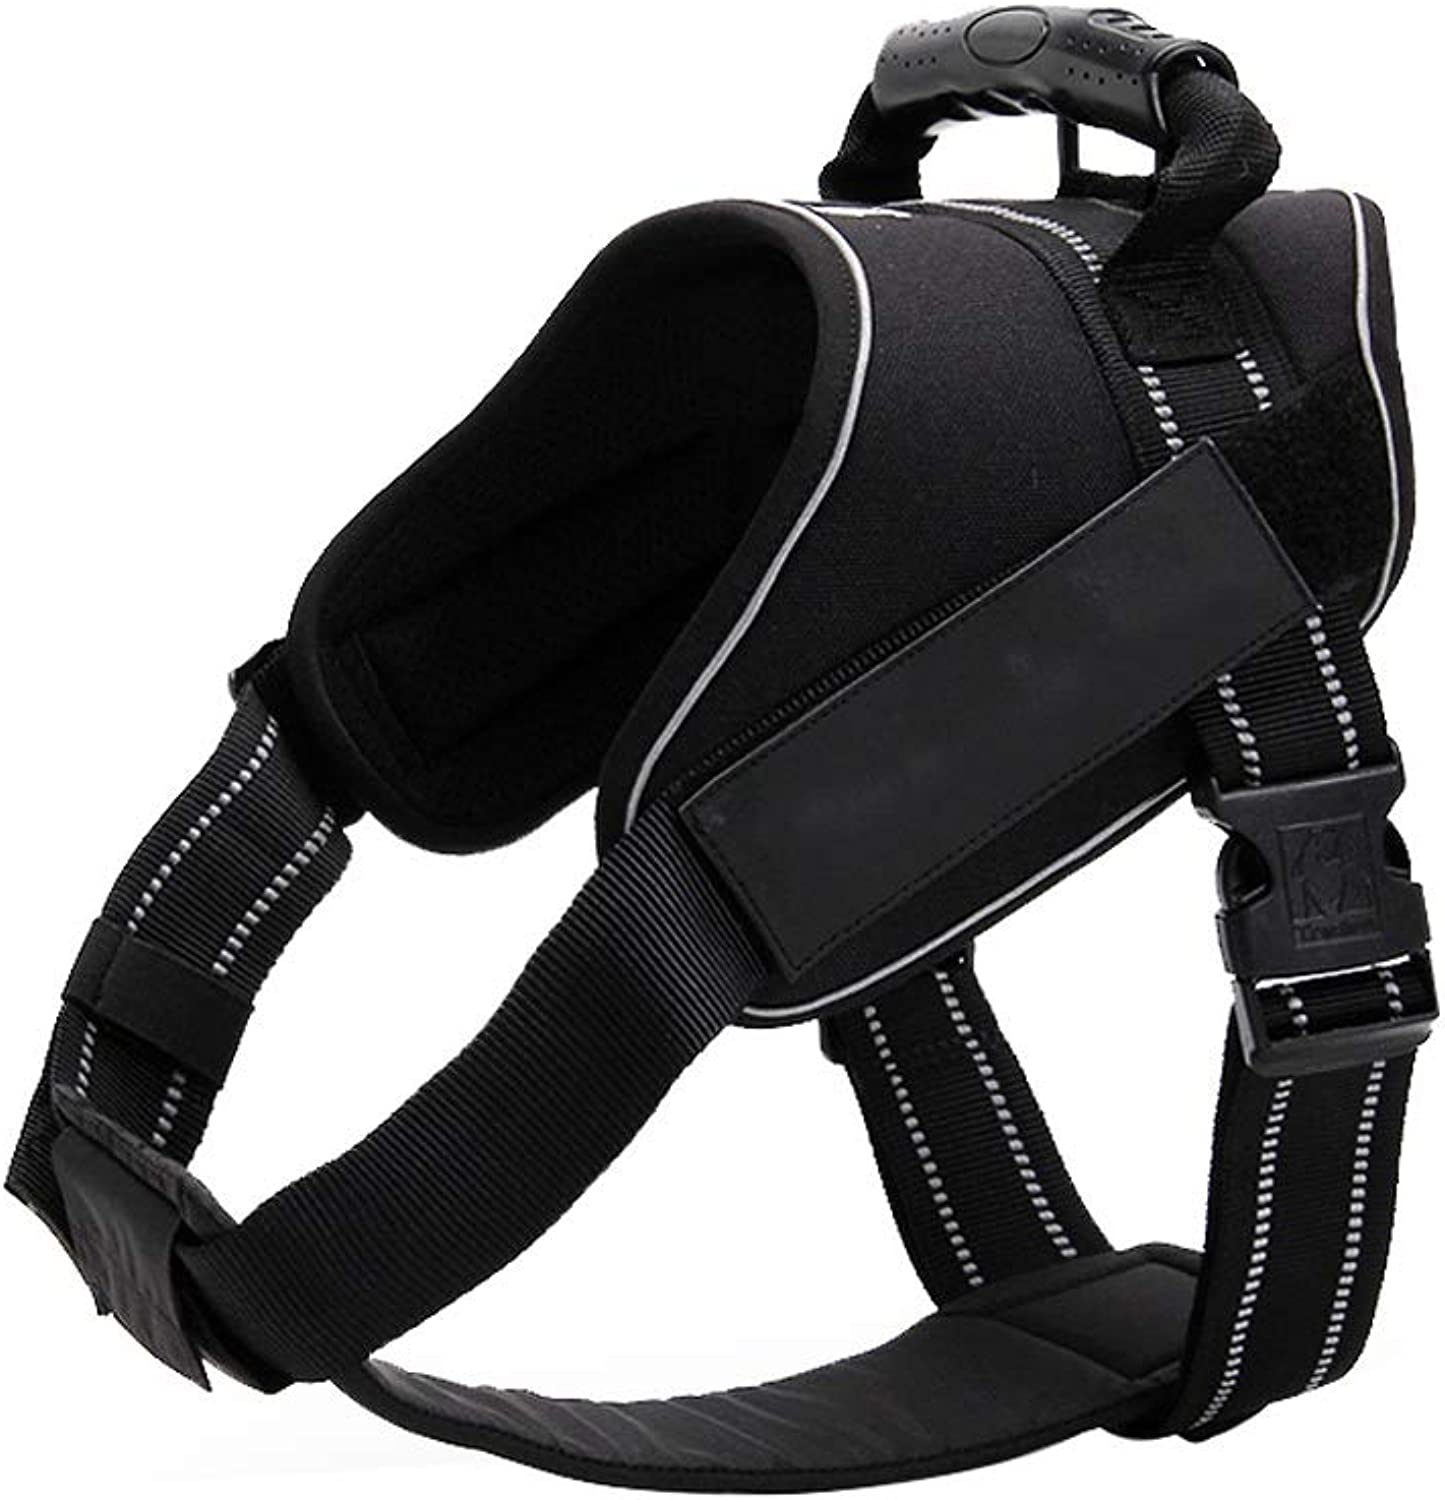 Dog Harness NoPull Pet Harness Adjustable Outdoor Pet Vest Oxford Material Vest for Dogs Easy Control for Small Medium Large Dogs (color   Black, Size   XL)